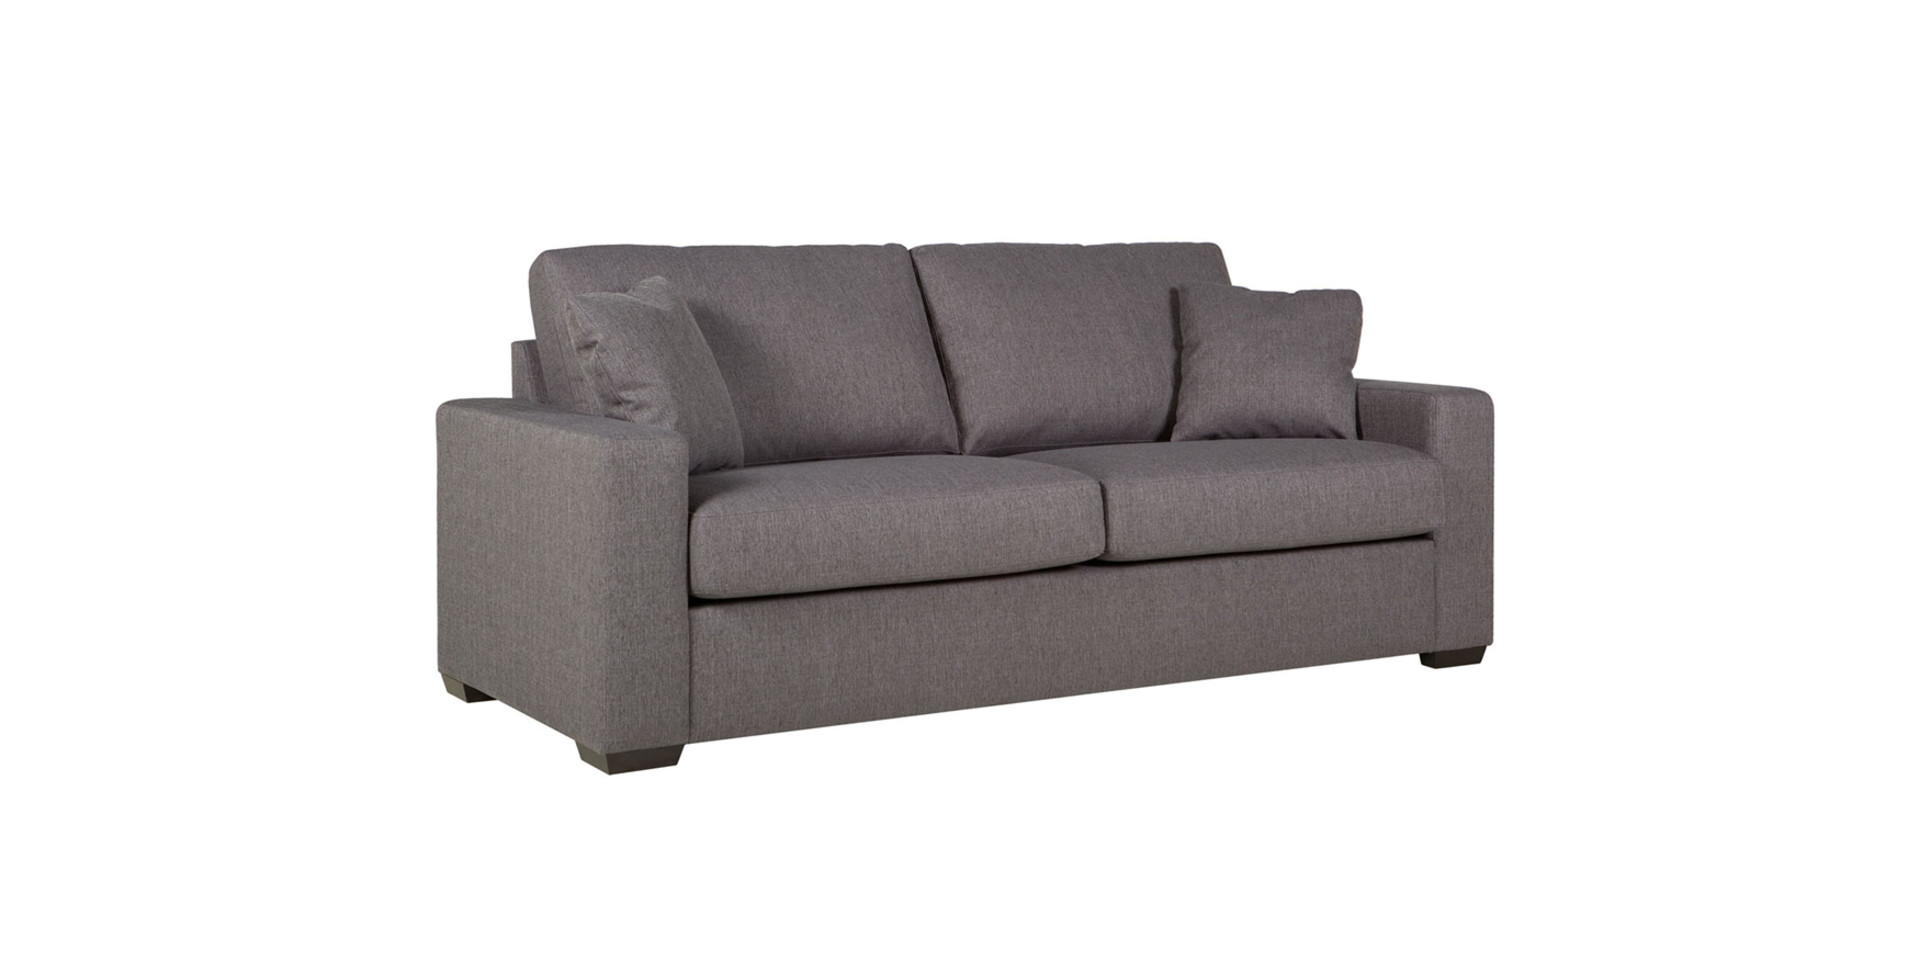 sits-phoenix-canape-3seater_cedros4_dark_grey_2